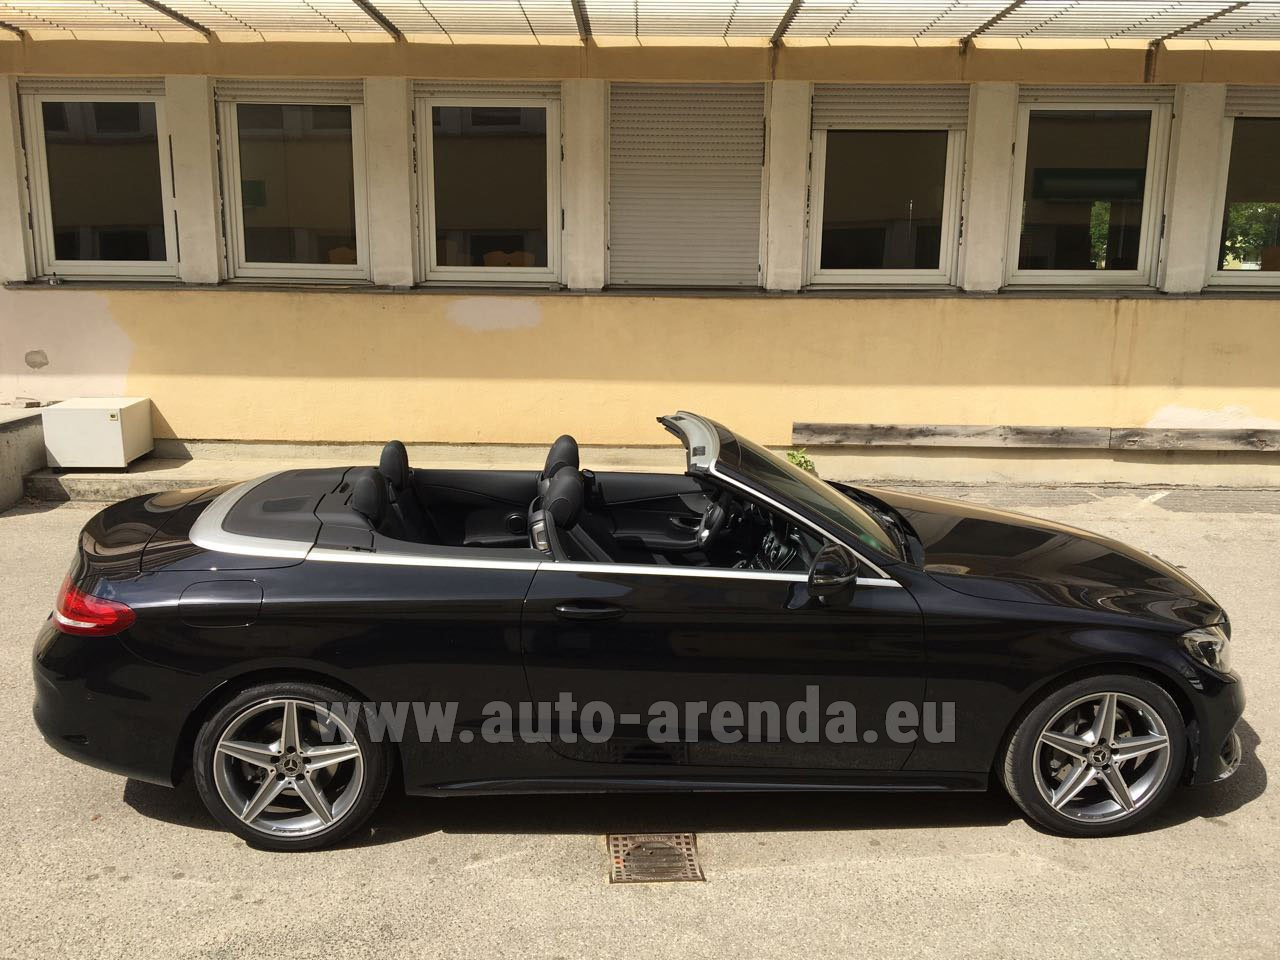 Fontvieille mercedes benz c class c 180 cabrio amg for Mercedes benz rental prices